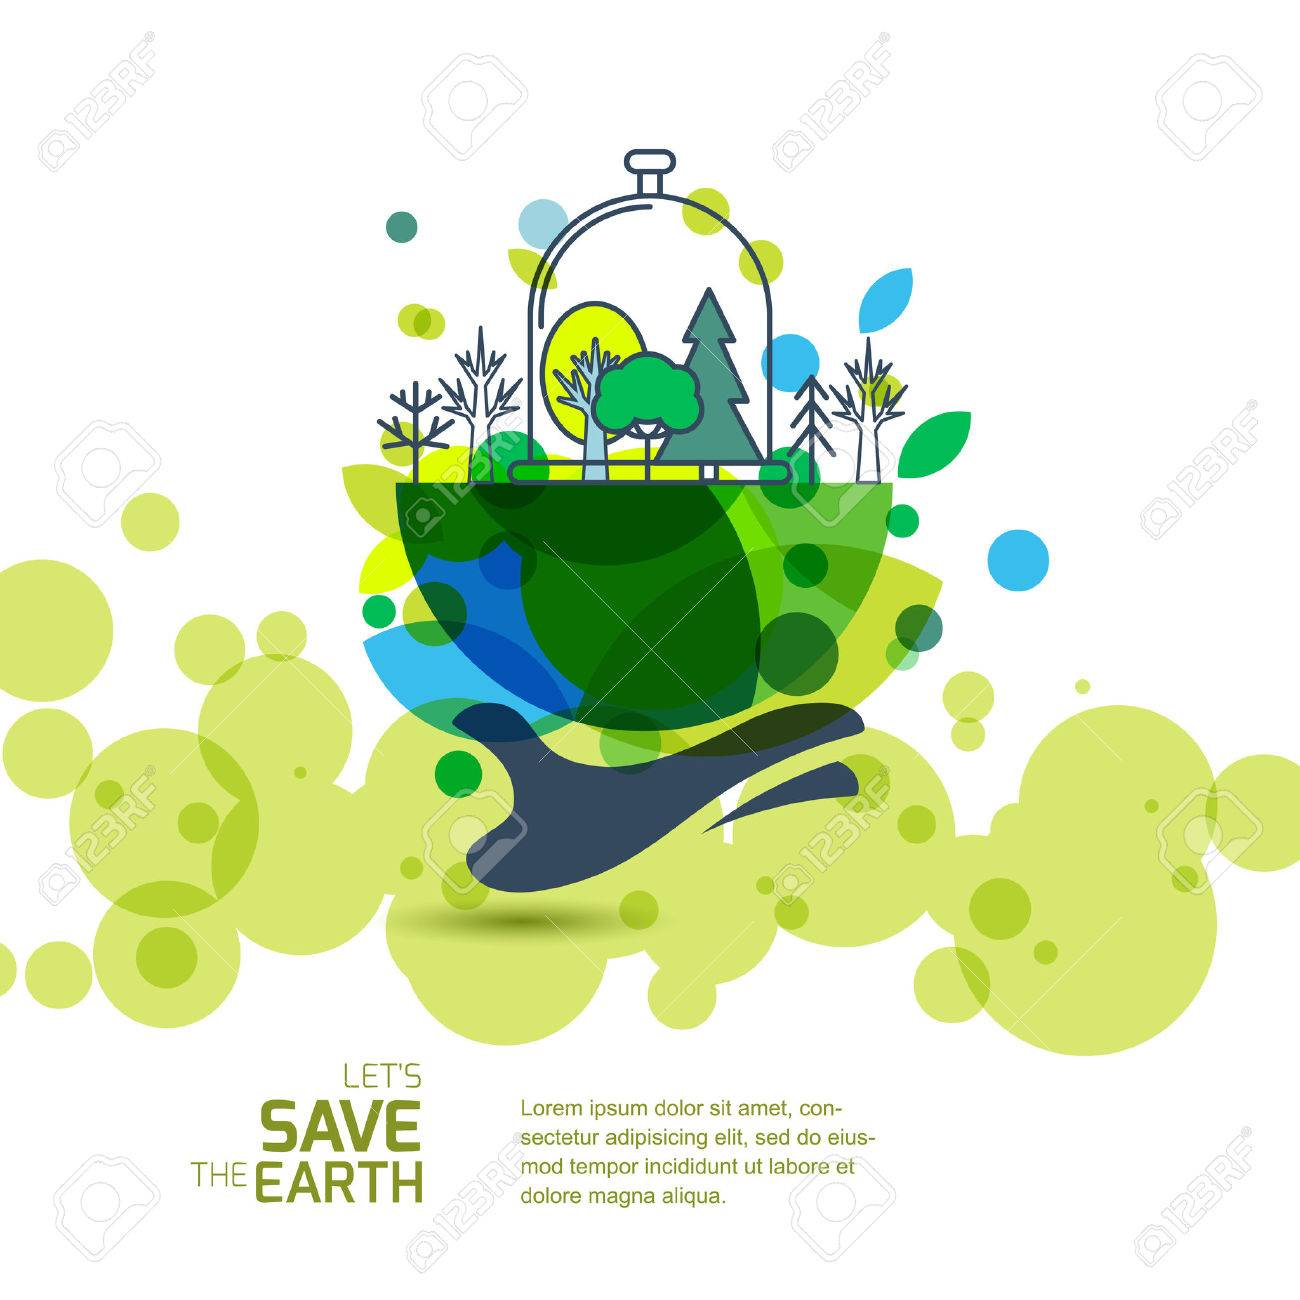 Human Hand Holding Green Earth With Trees Banner Background Design For Save The Day